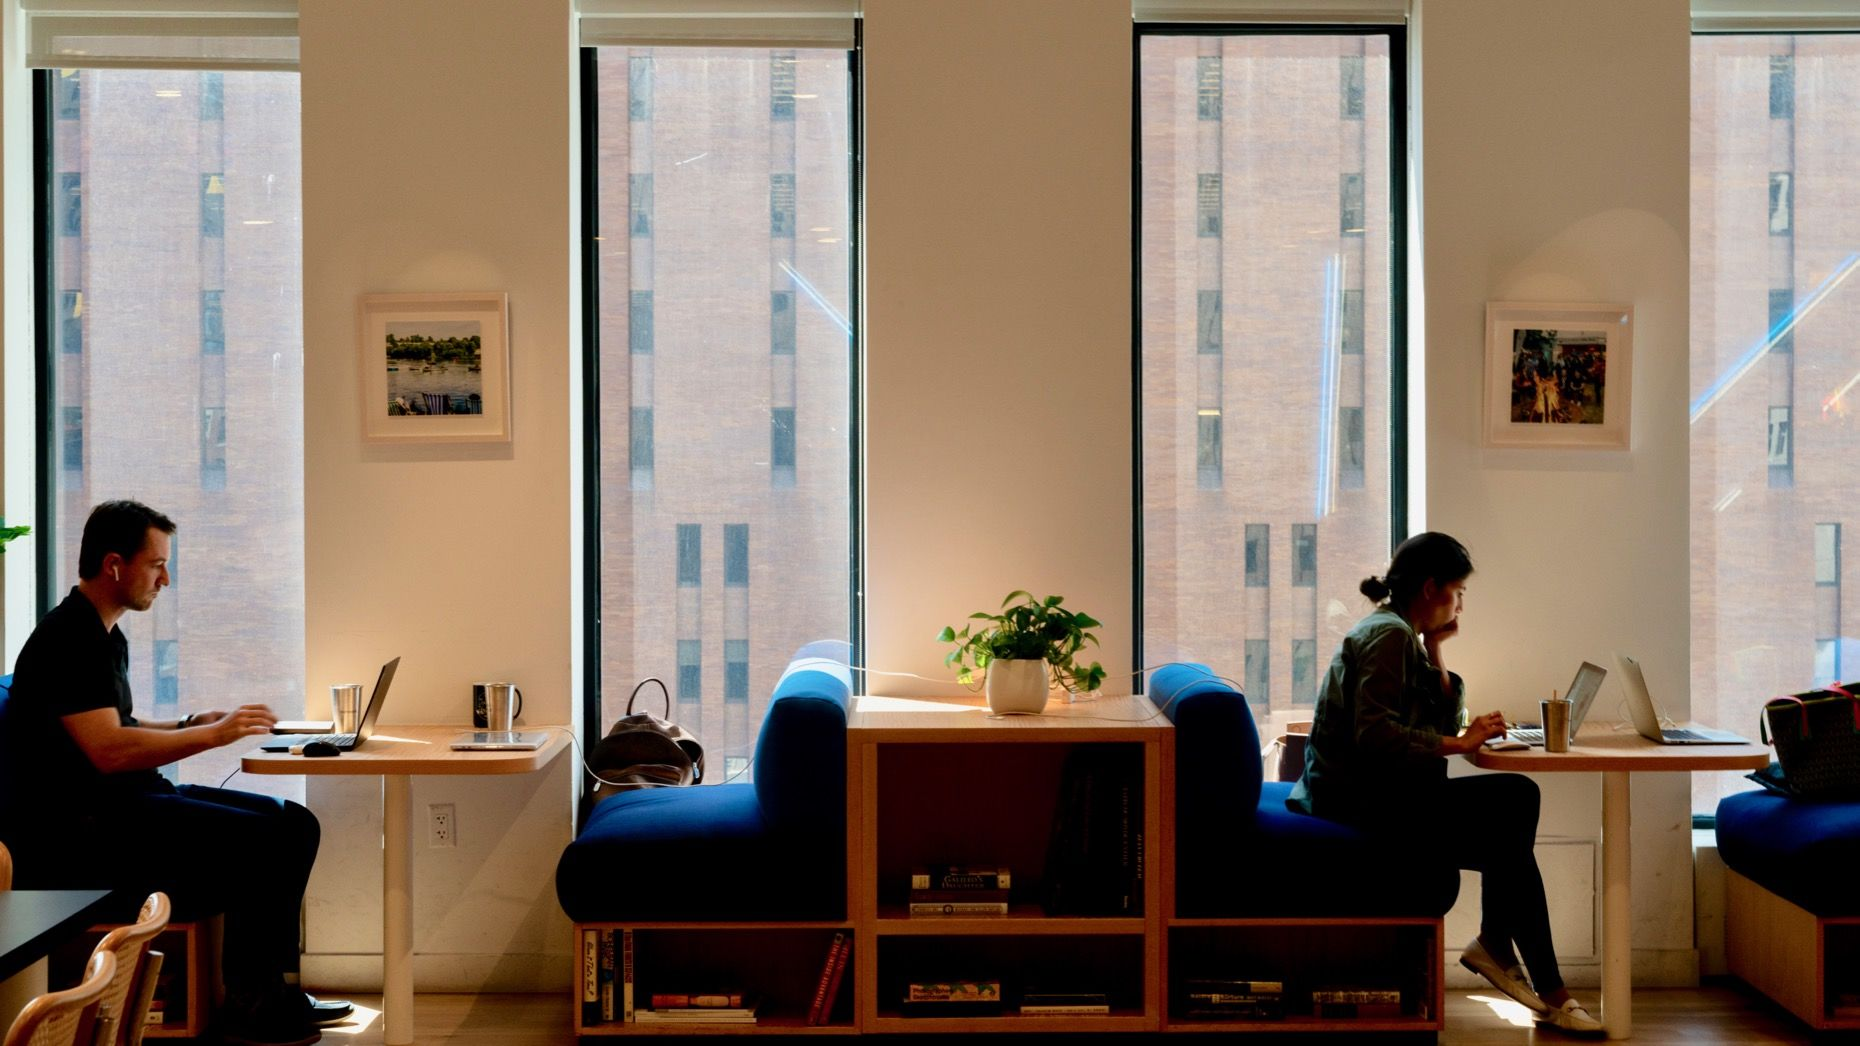 A WeWork office in New York. Photo by Bloomberg